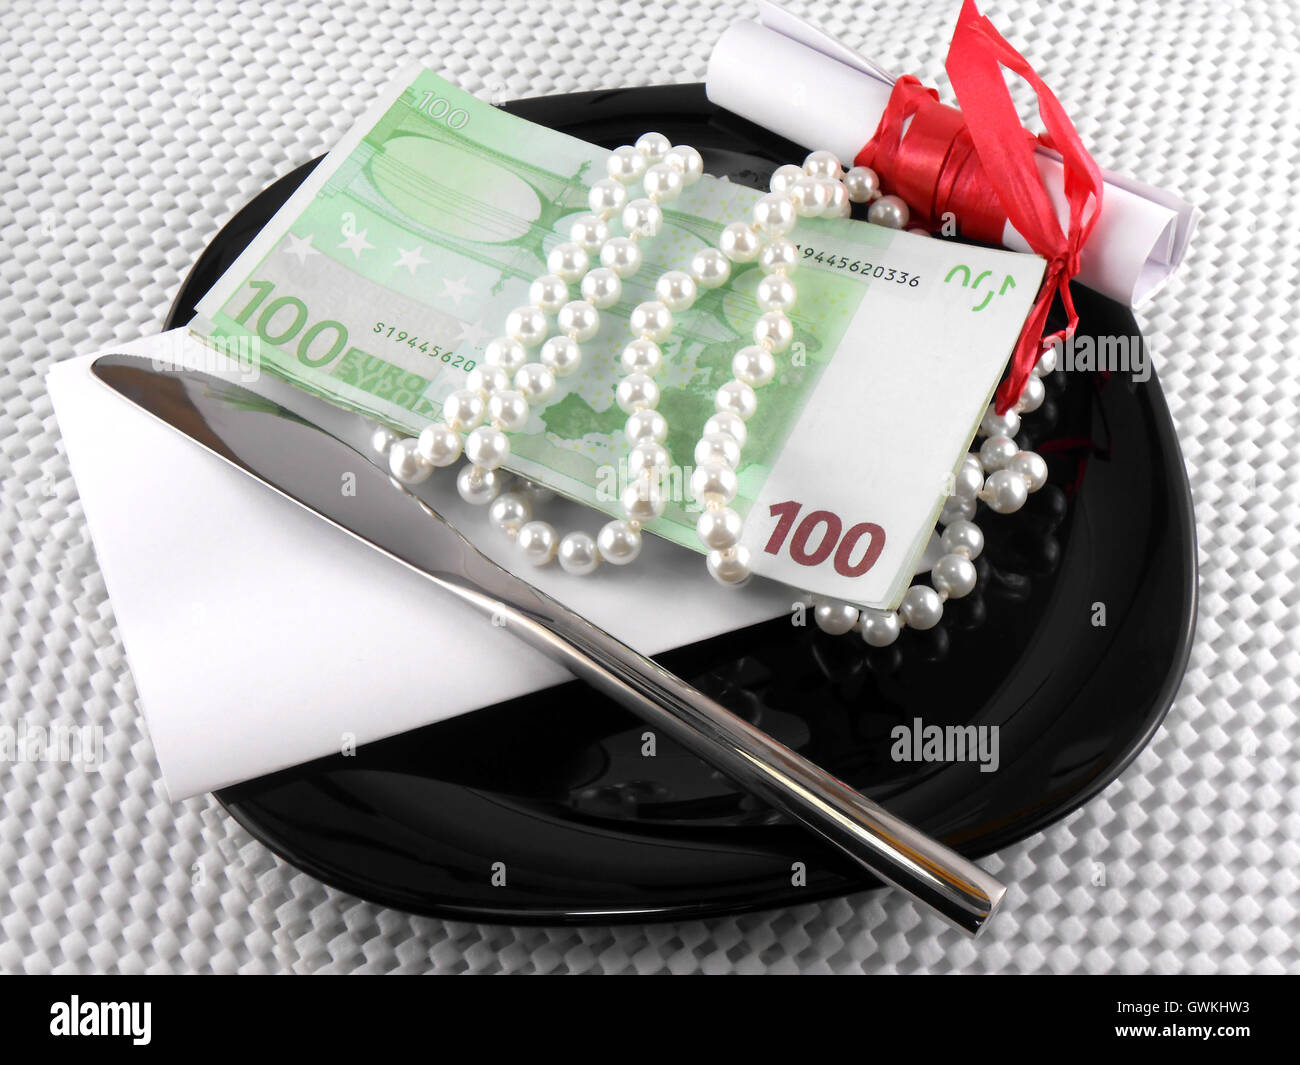 Money on plate, knife, diamonds and gift bow on white paper Stock Photo